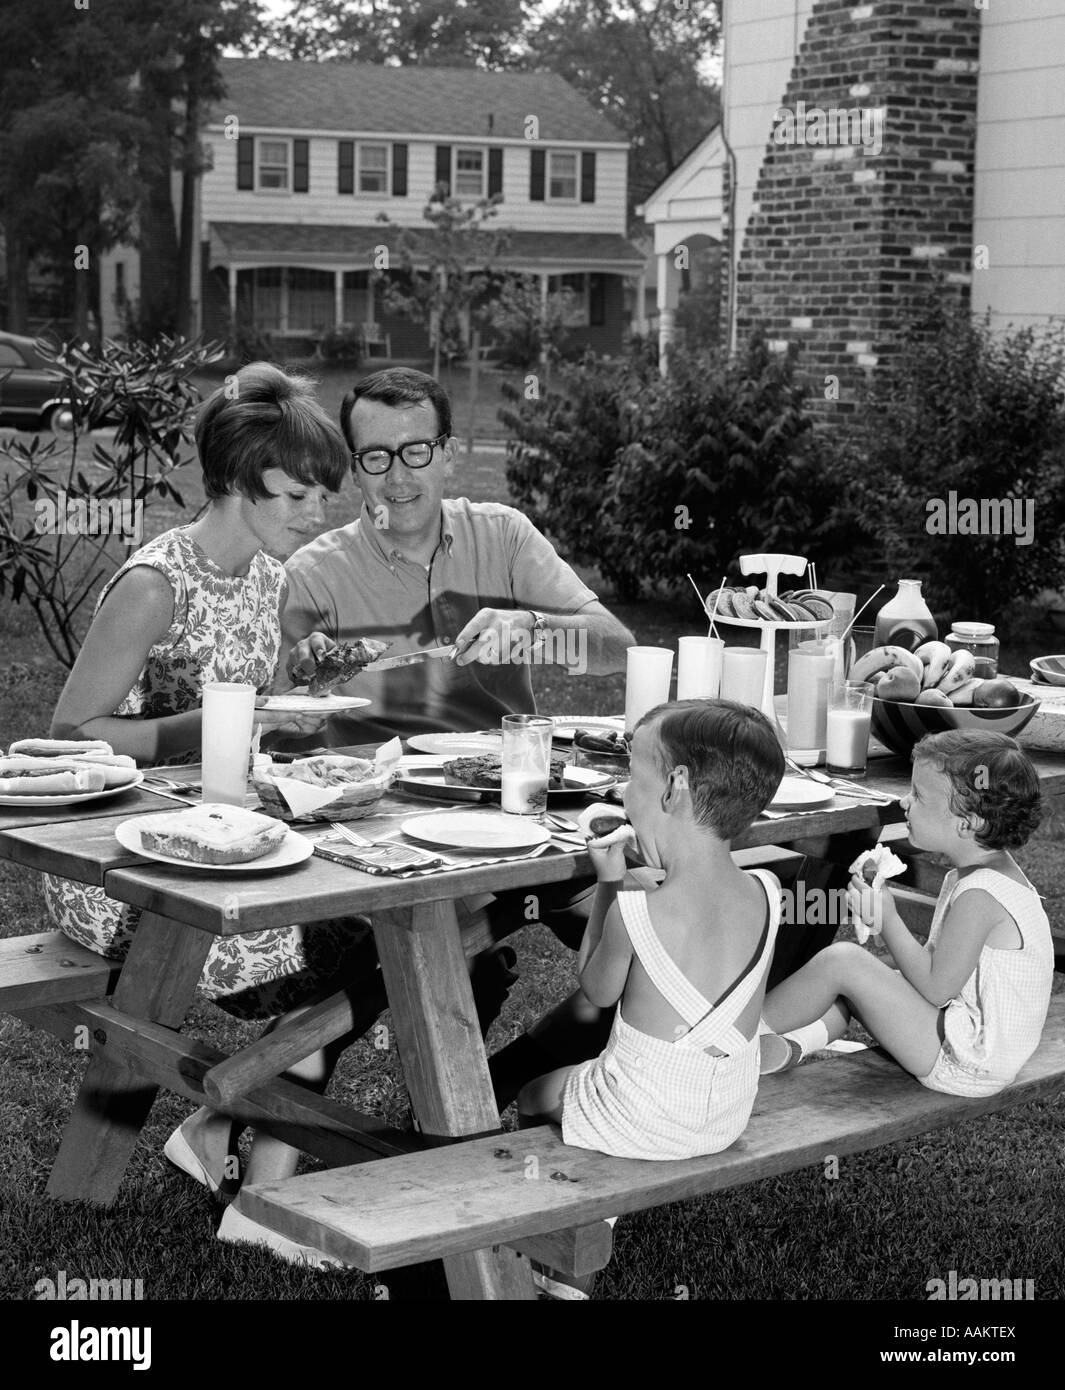 1960s SUBURBAN FAMILY OF FOUR AT PICNIC TABLE IN BACKYARD EATING - Stock Image